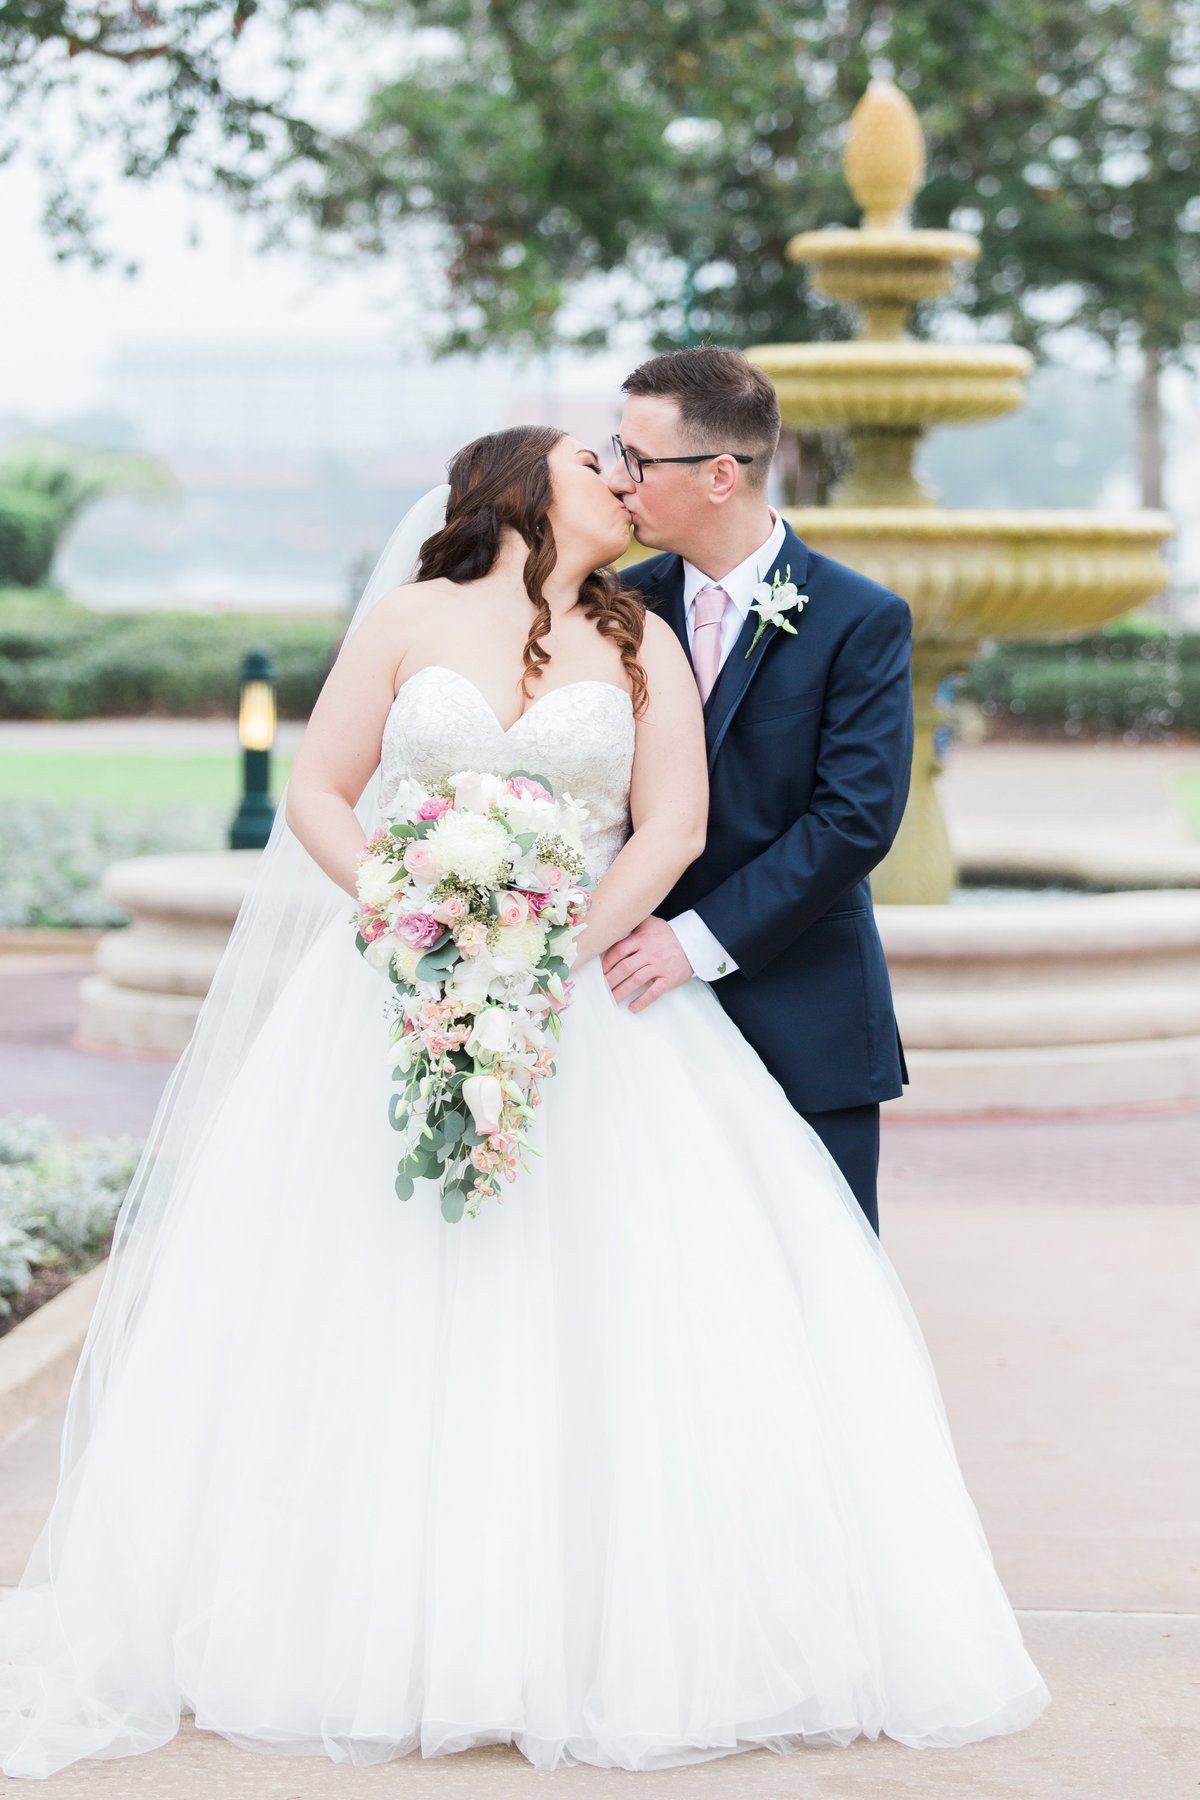 Jess Collins Photography Our Disney Wedding 2017 (139 of 668)